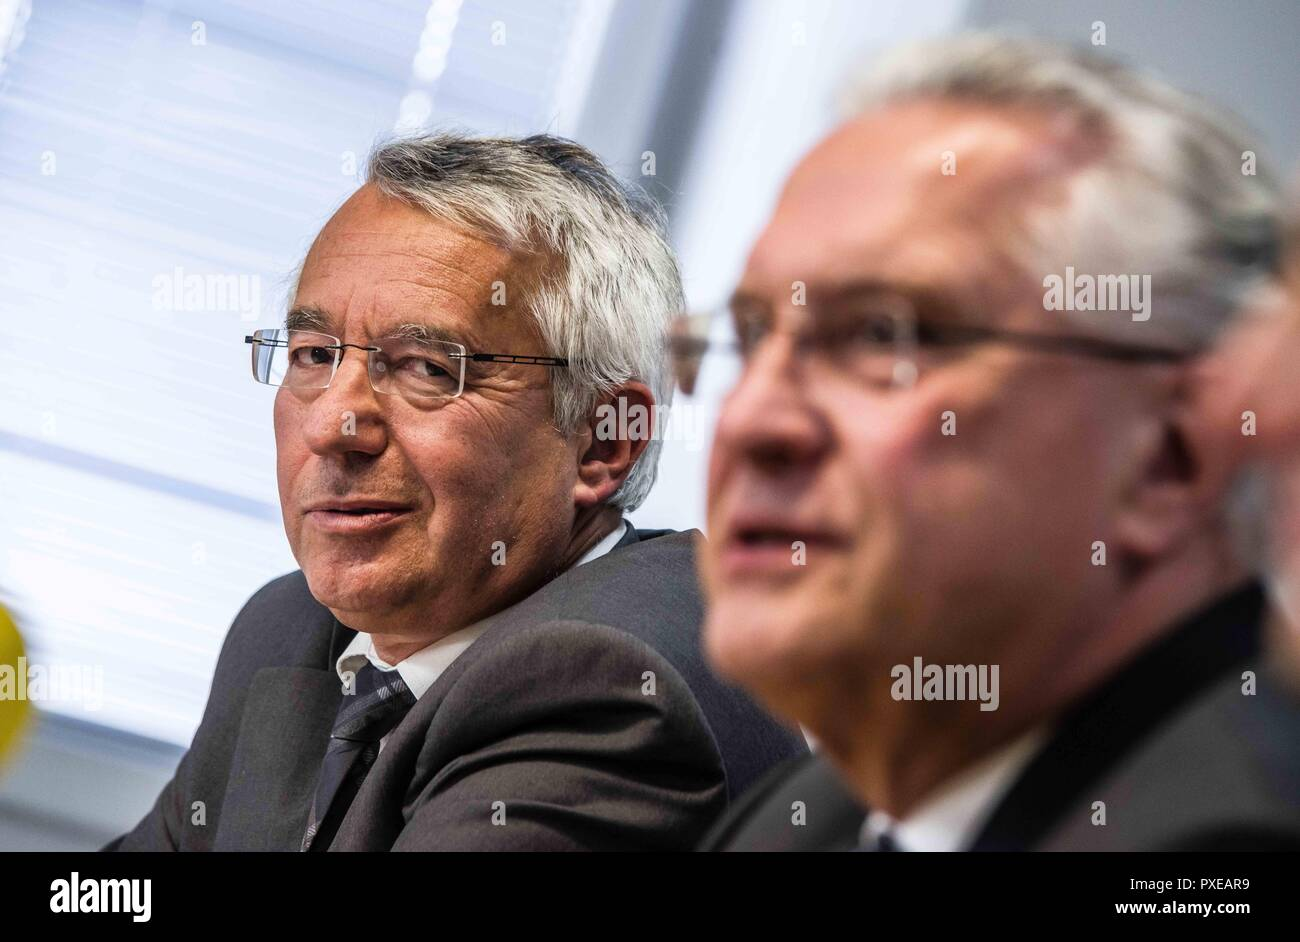 Munich, Bavaria, Germany. 22nd Oct, 2018. WILHELM SCHMIDBAUER president of the Bavarian Police and Bavarian Interior Minister JOACHIM HERRMANN of the CSU. In response to a wave of publications that declare the border checks between Austria and Germany as unconstitutional, Bavarian Interior Minister JOACHIM HERRMANN called an emergency meeting with Bavarian police president WILHELM SCHMIDBAUER to dispute the claims of unconstitutionality and ineffectiveness of the work carried out by the Grenzpolizei (border police). The Grenzpolizei is composed of Bavarian police tasked with this addition - Stock Image